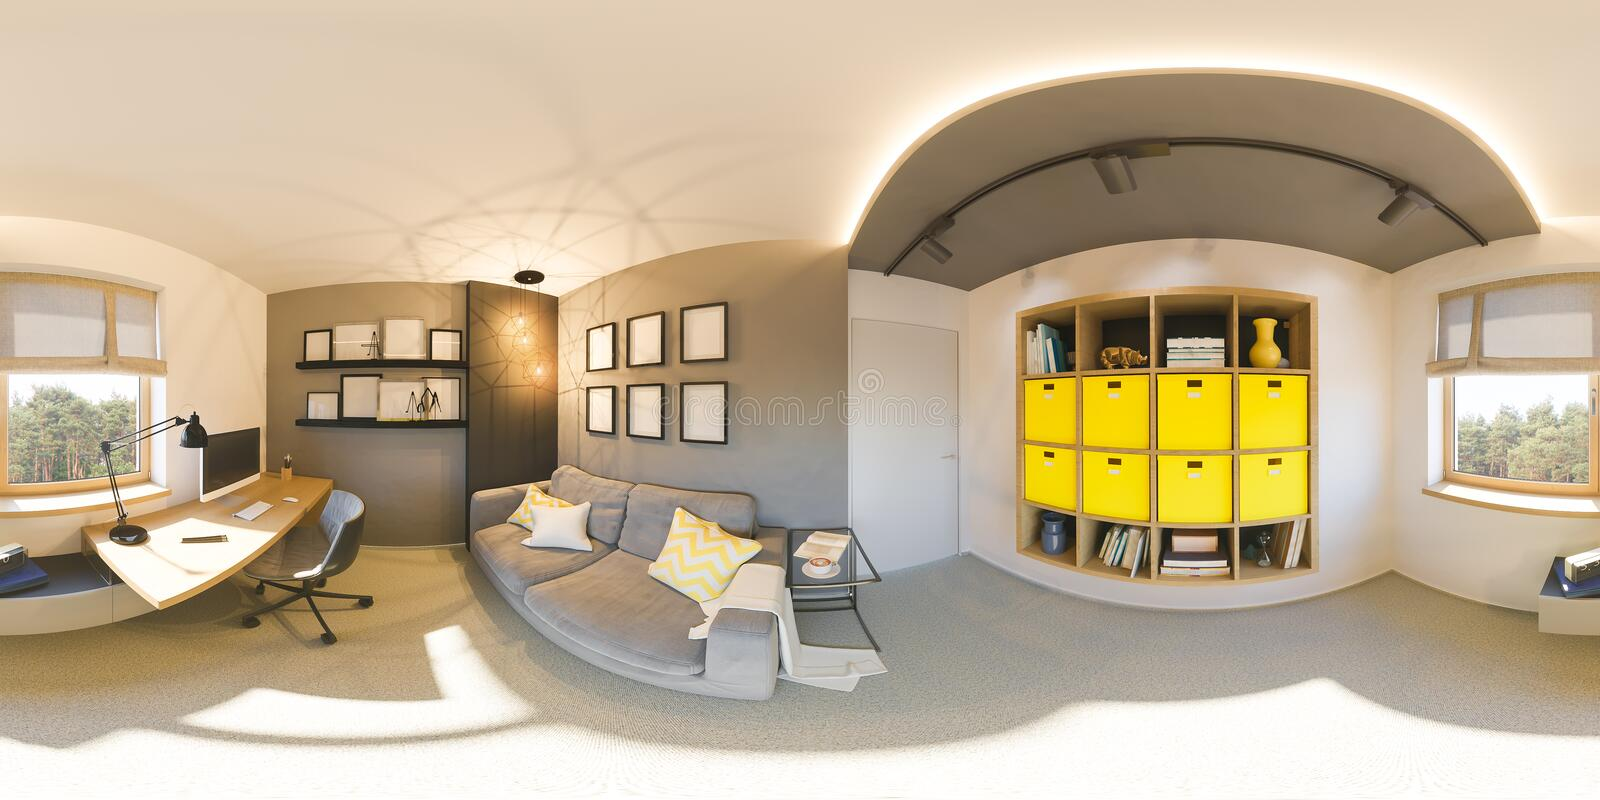 Seamless 360 vr home office panorama. 3d illustration of modern apartment interior design royalty free illustration